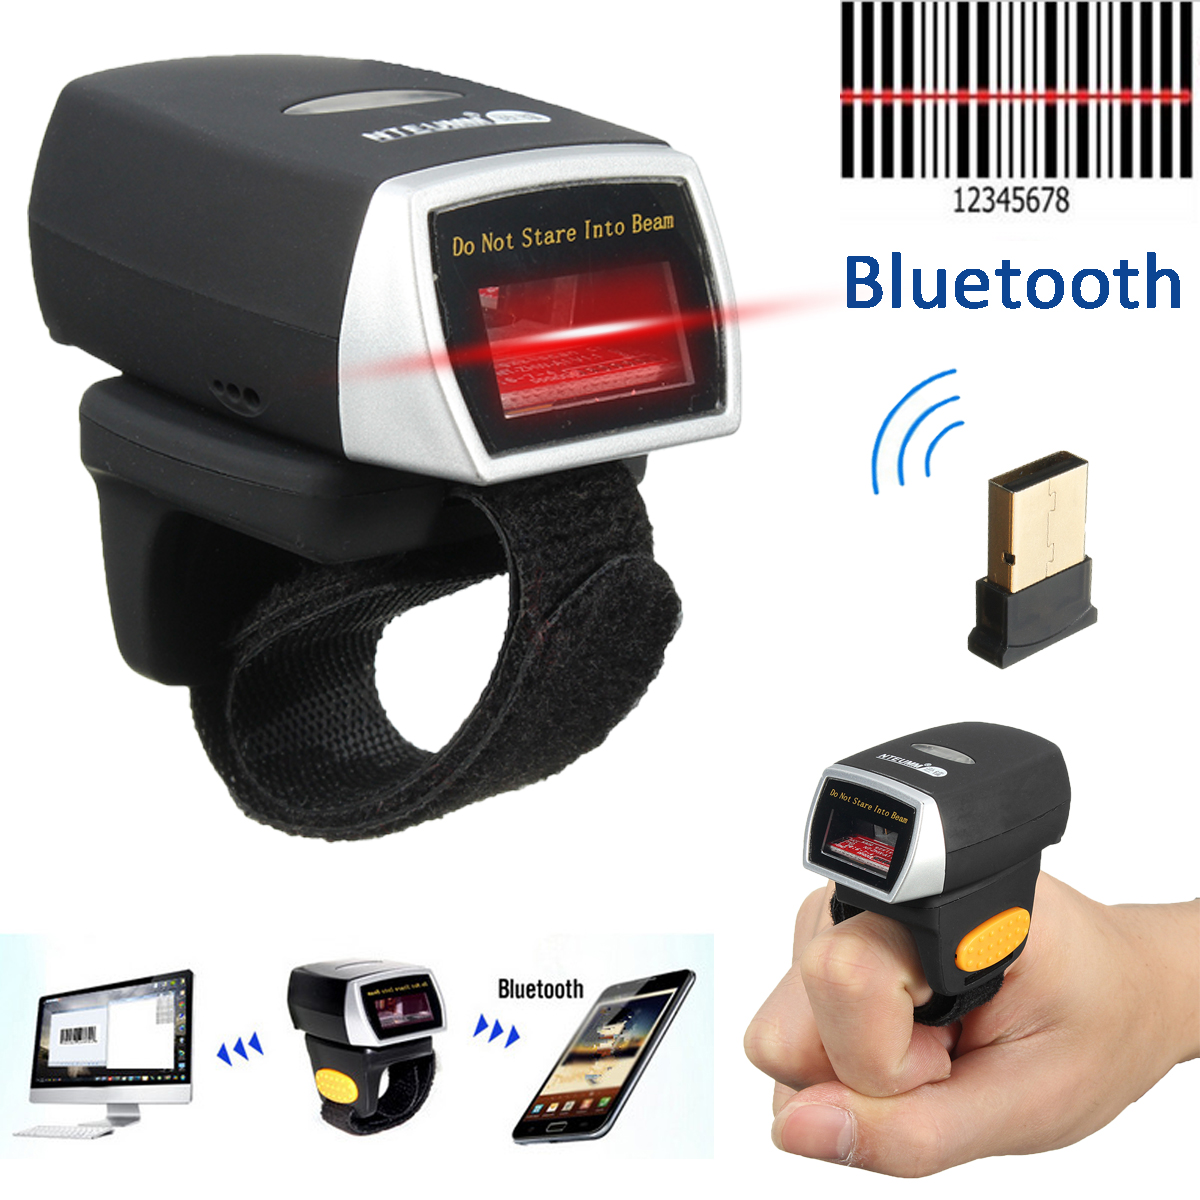 Mini Bluetooth Scanner Barcode Reader Laser Weirless Scanner Wearable Ring Bar Code Scanner 1D Reader Scan for Phone PC Tablet tempered glass 2 5d screen protector for lenovo k5 note transparent